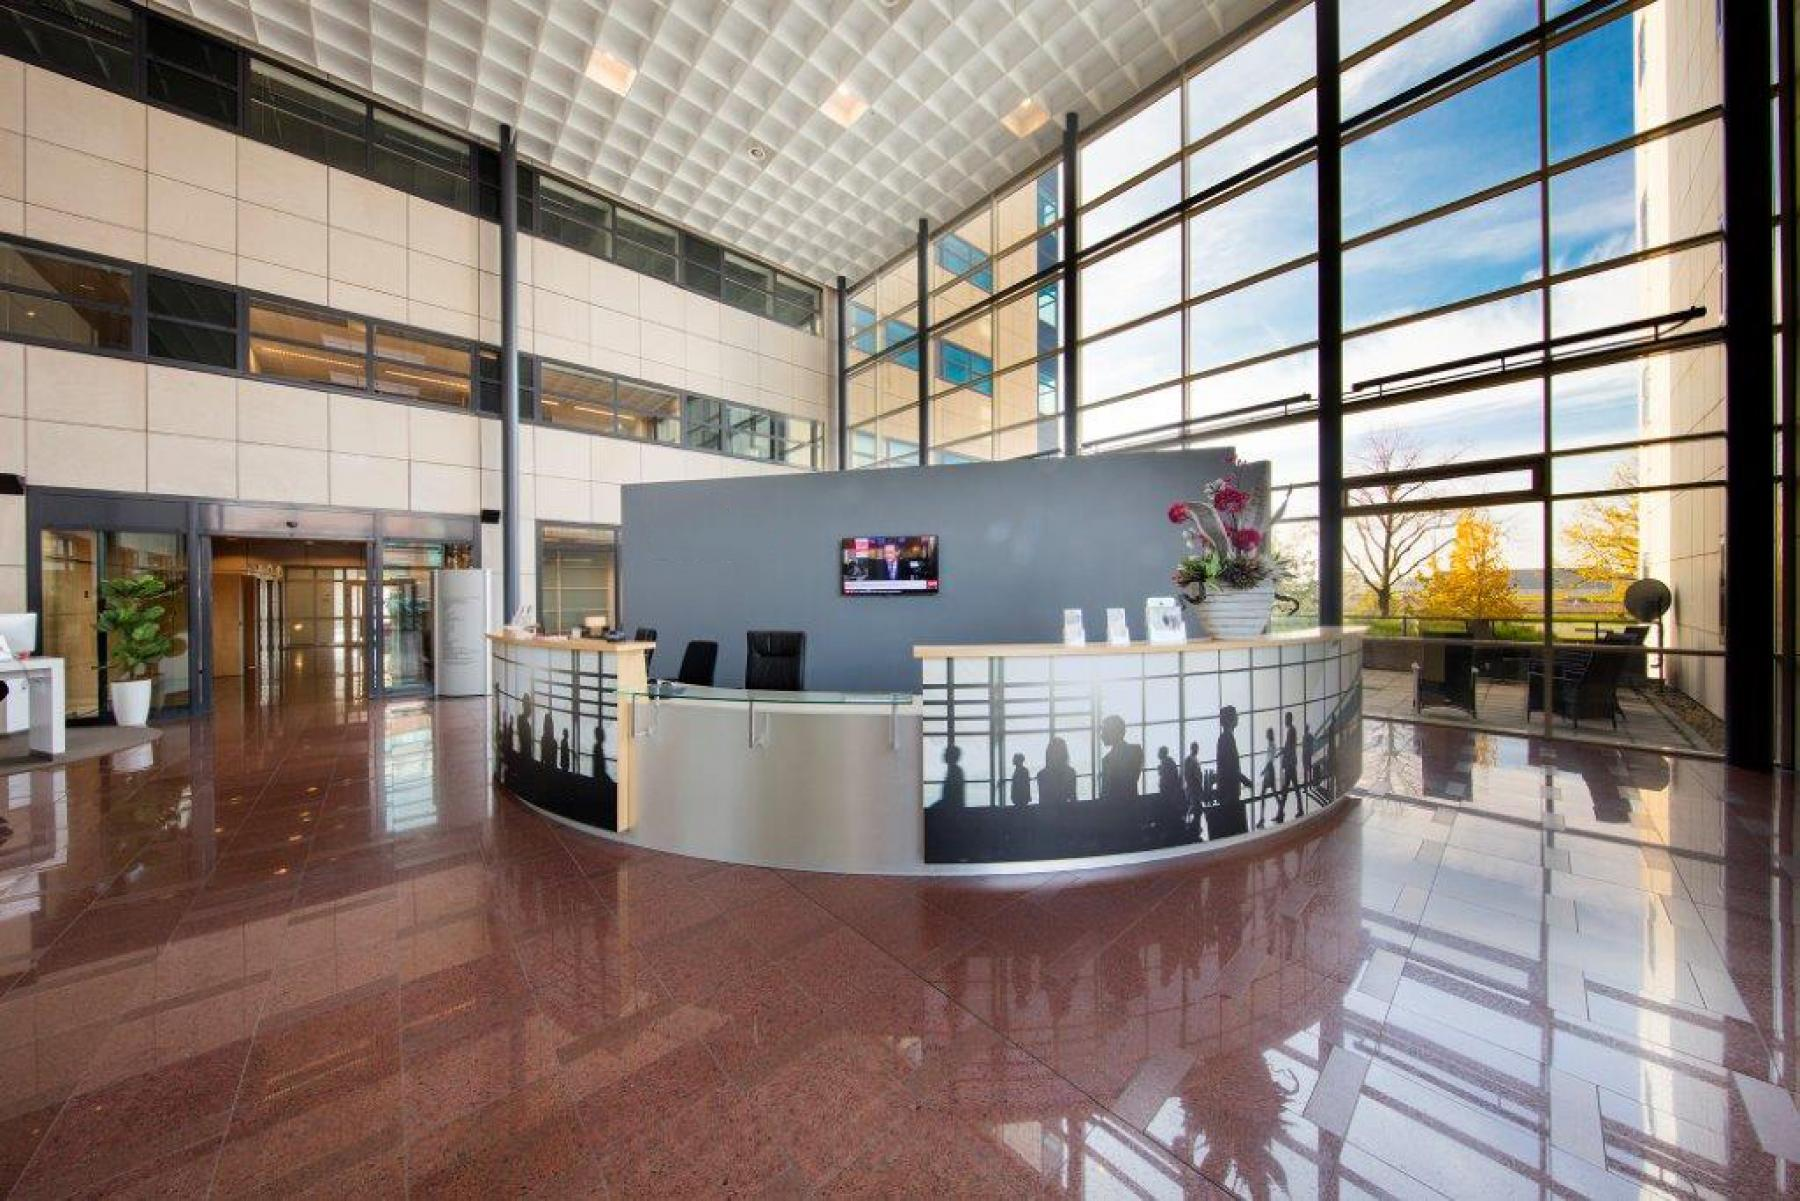 Rent office space Beechavenue 54-62, Schiphol (27)